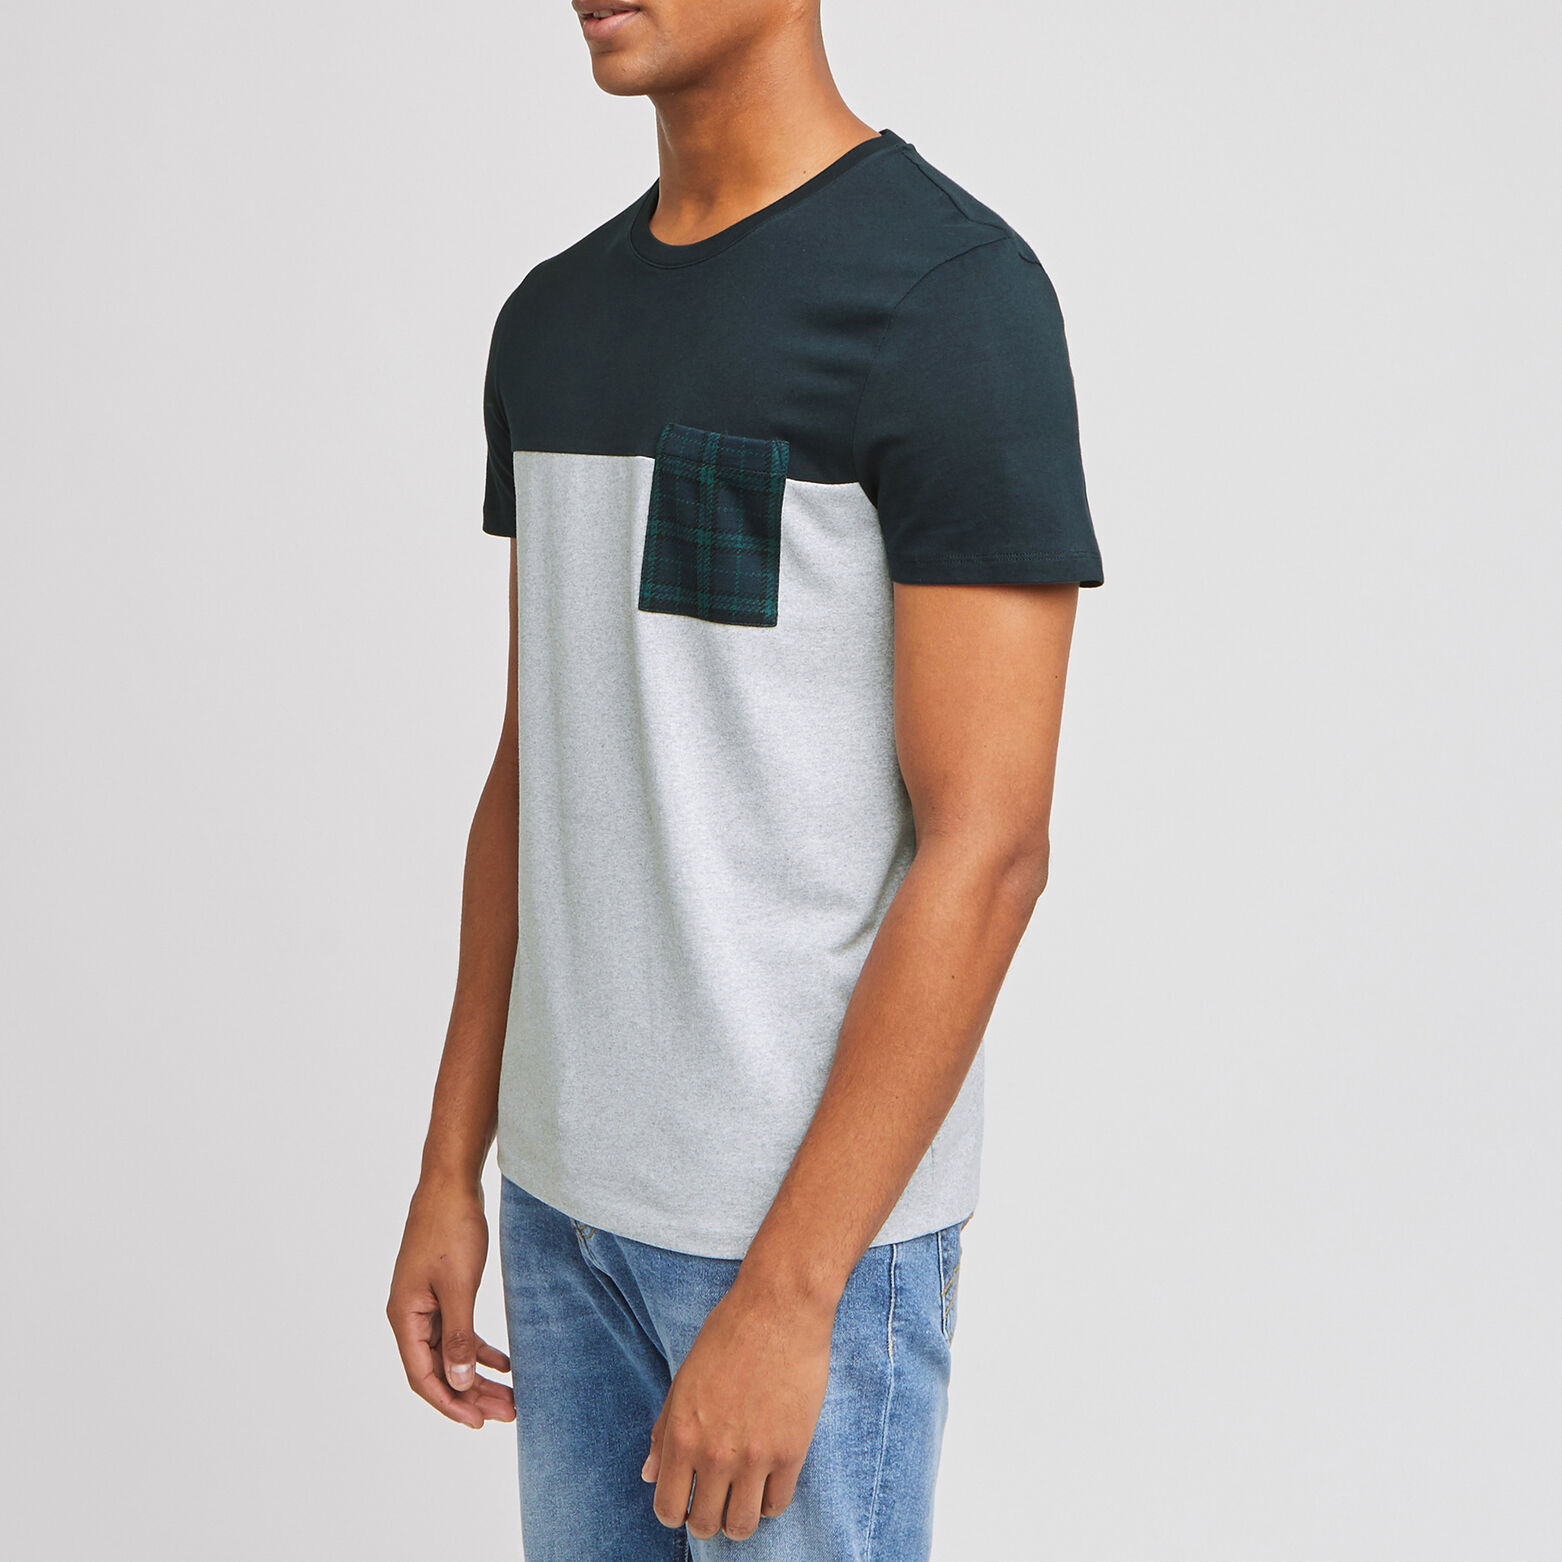 Tee-shirt color block poche imprimée